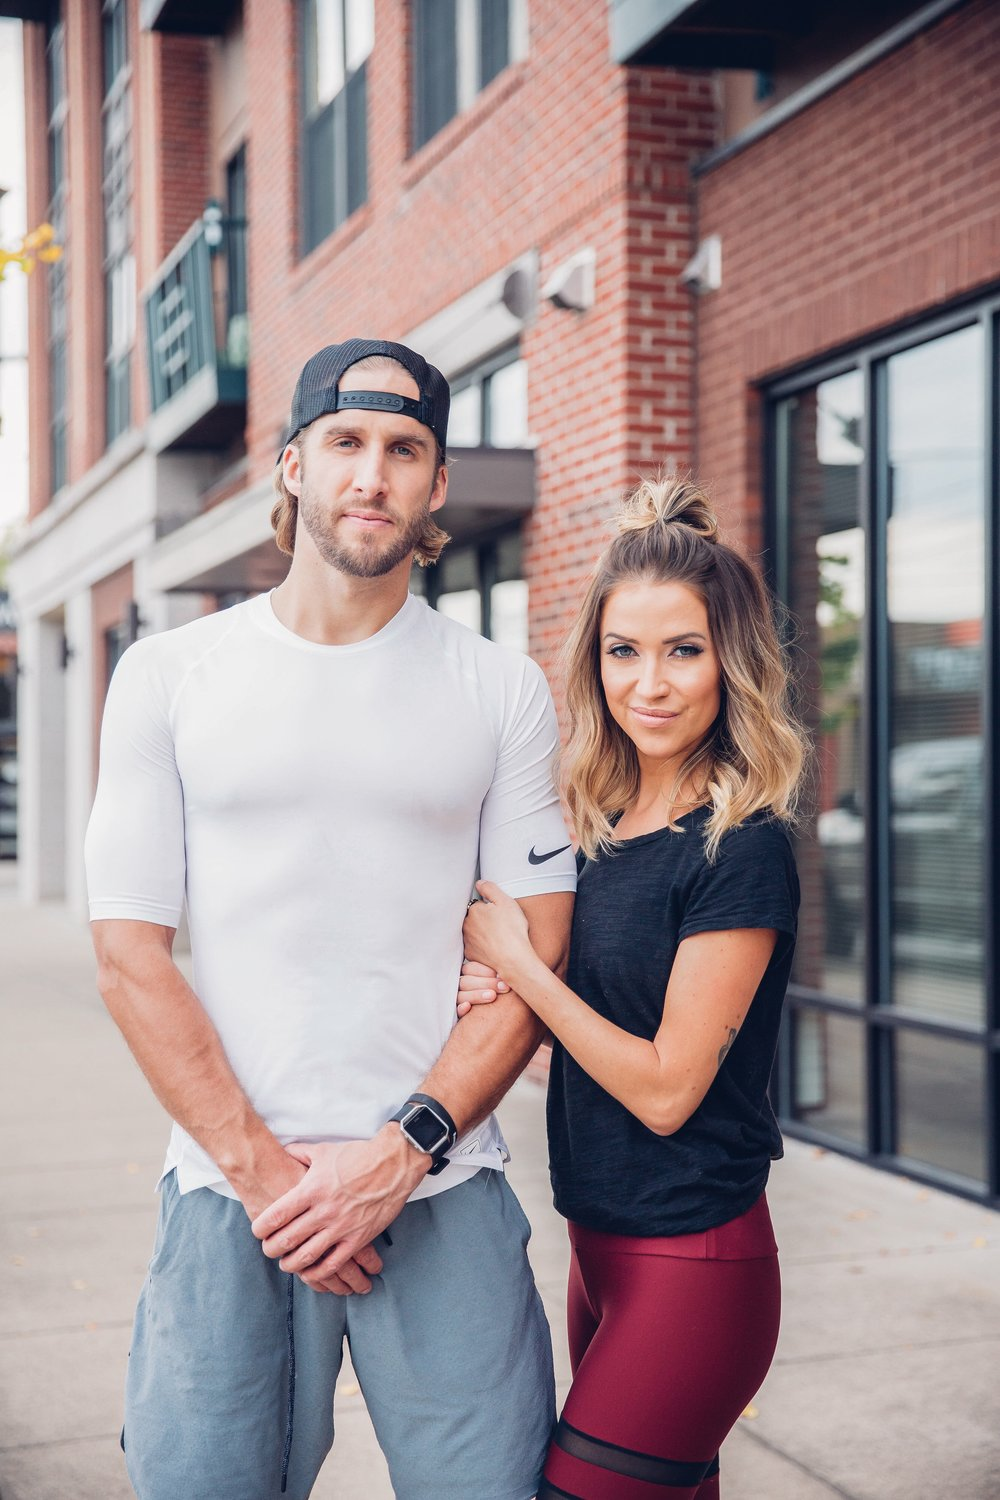 Kaitlyn Bristowe + Shawn Booth; The Bachelorette